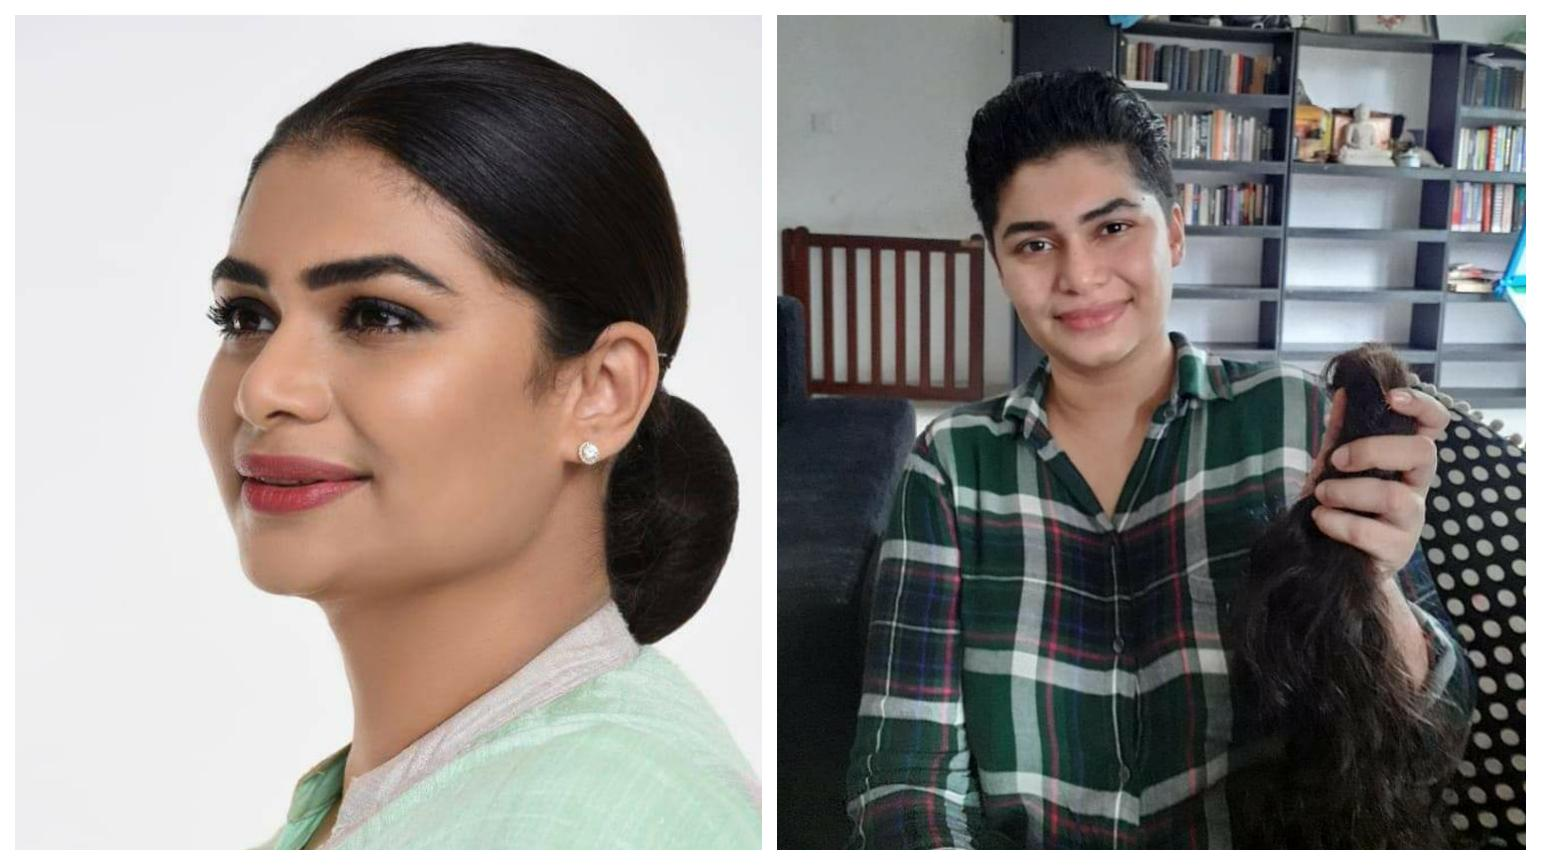 Hirunika donates her hair to a Cancer Patient